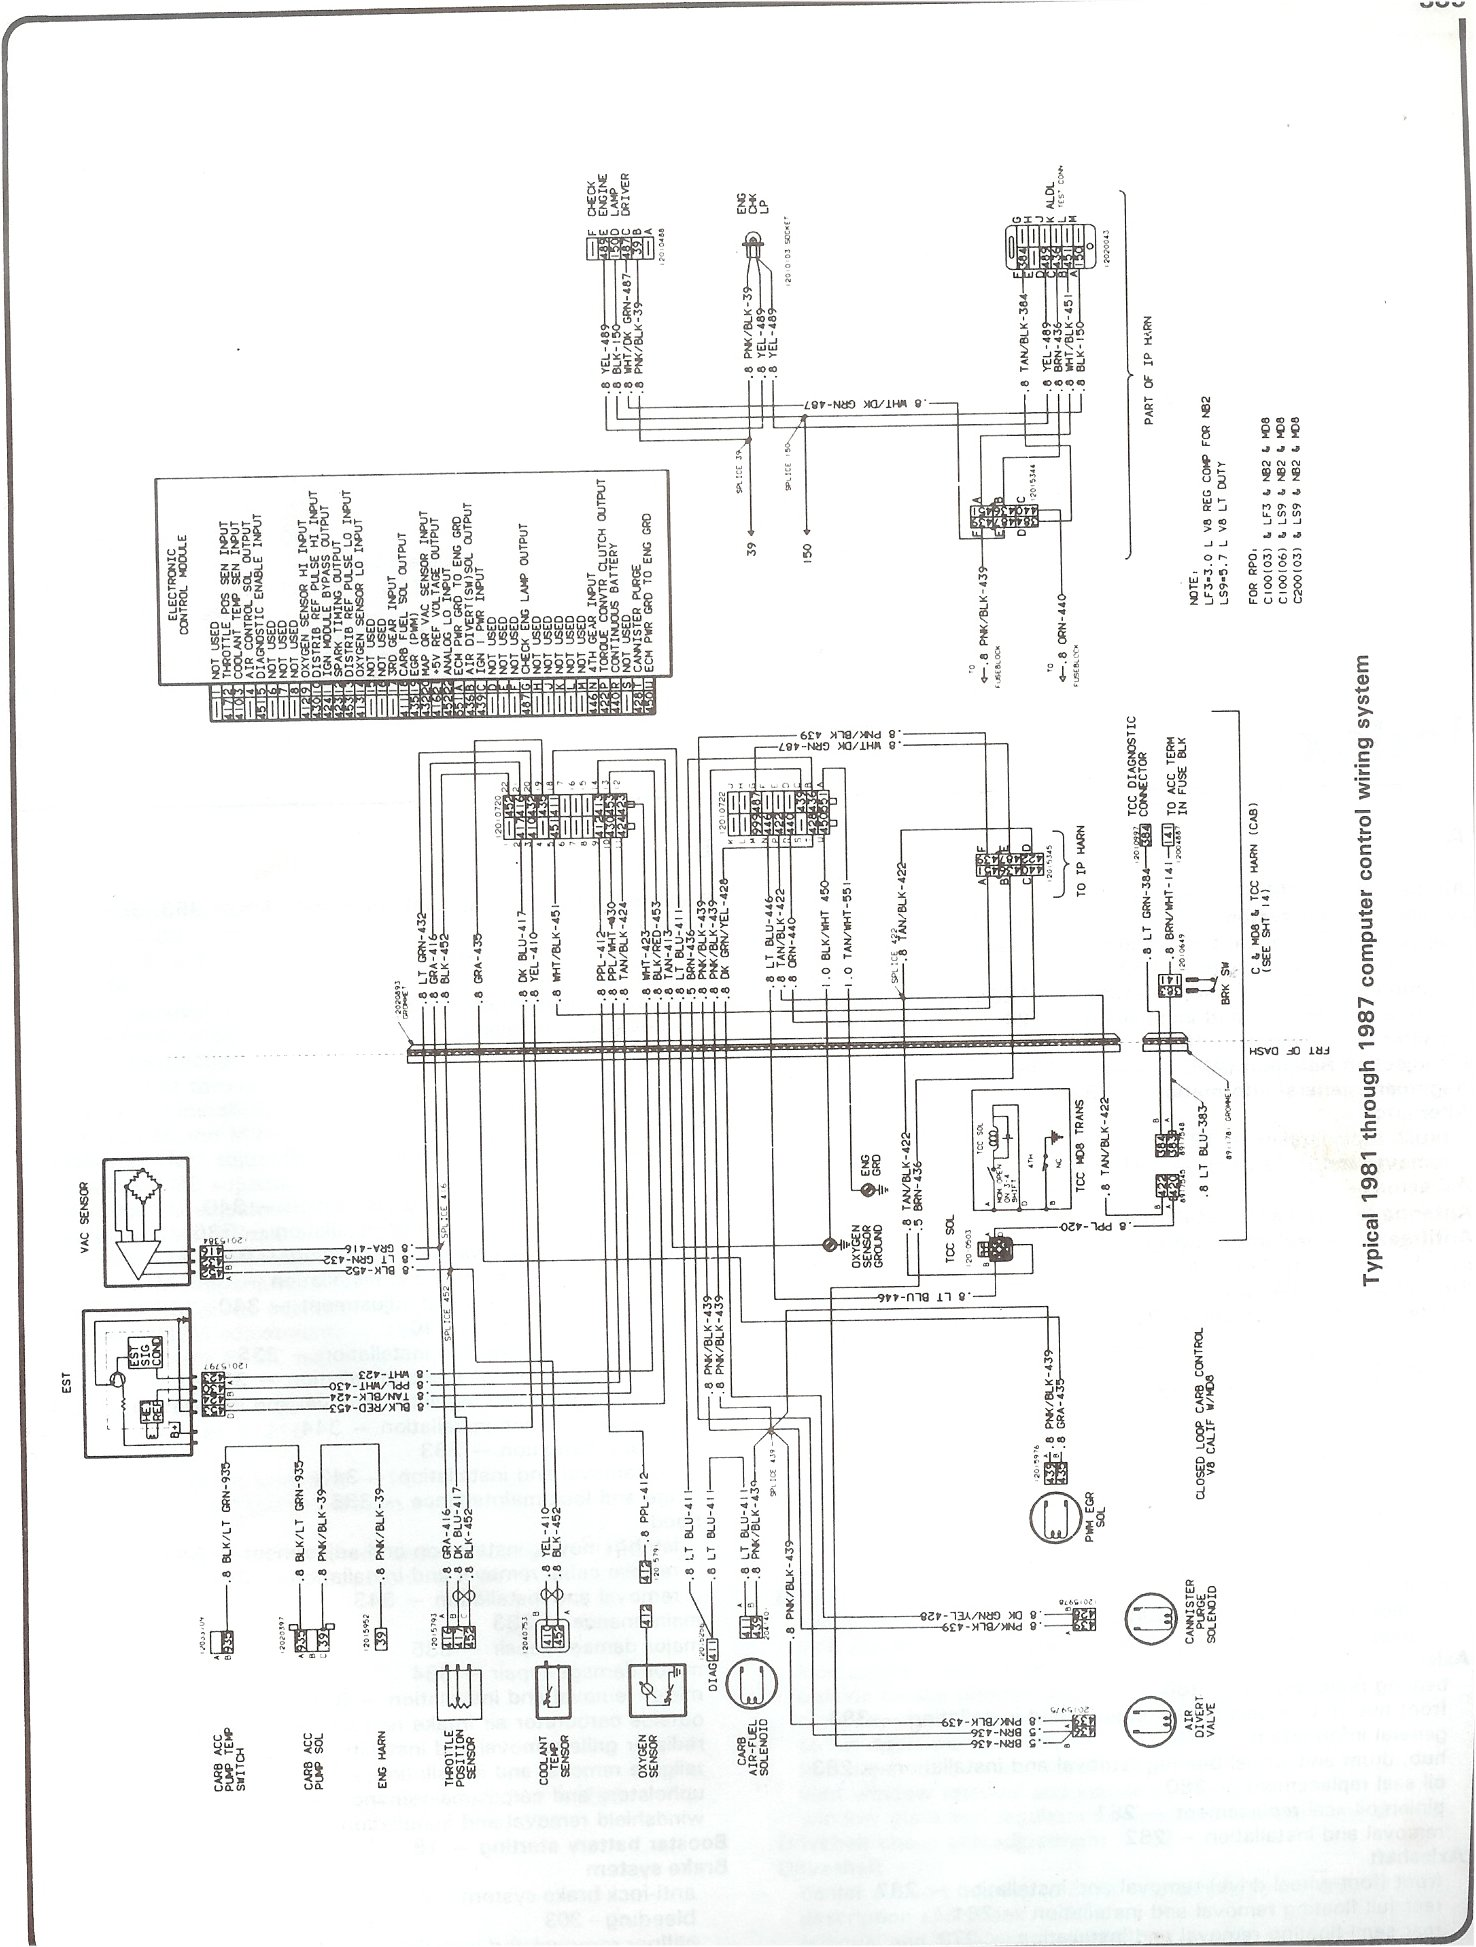 81 87_computer_control_wiring complete 73 87 wiring diagrams 1982 chevy radio wiring diagram at crackthecode.co